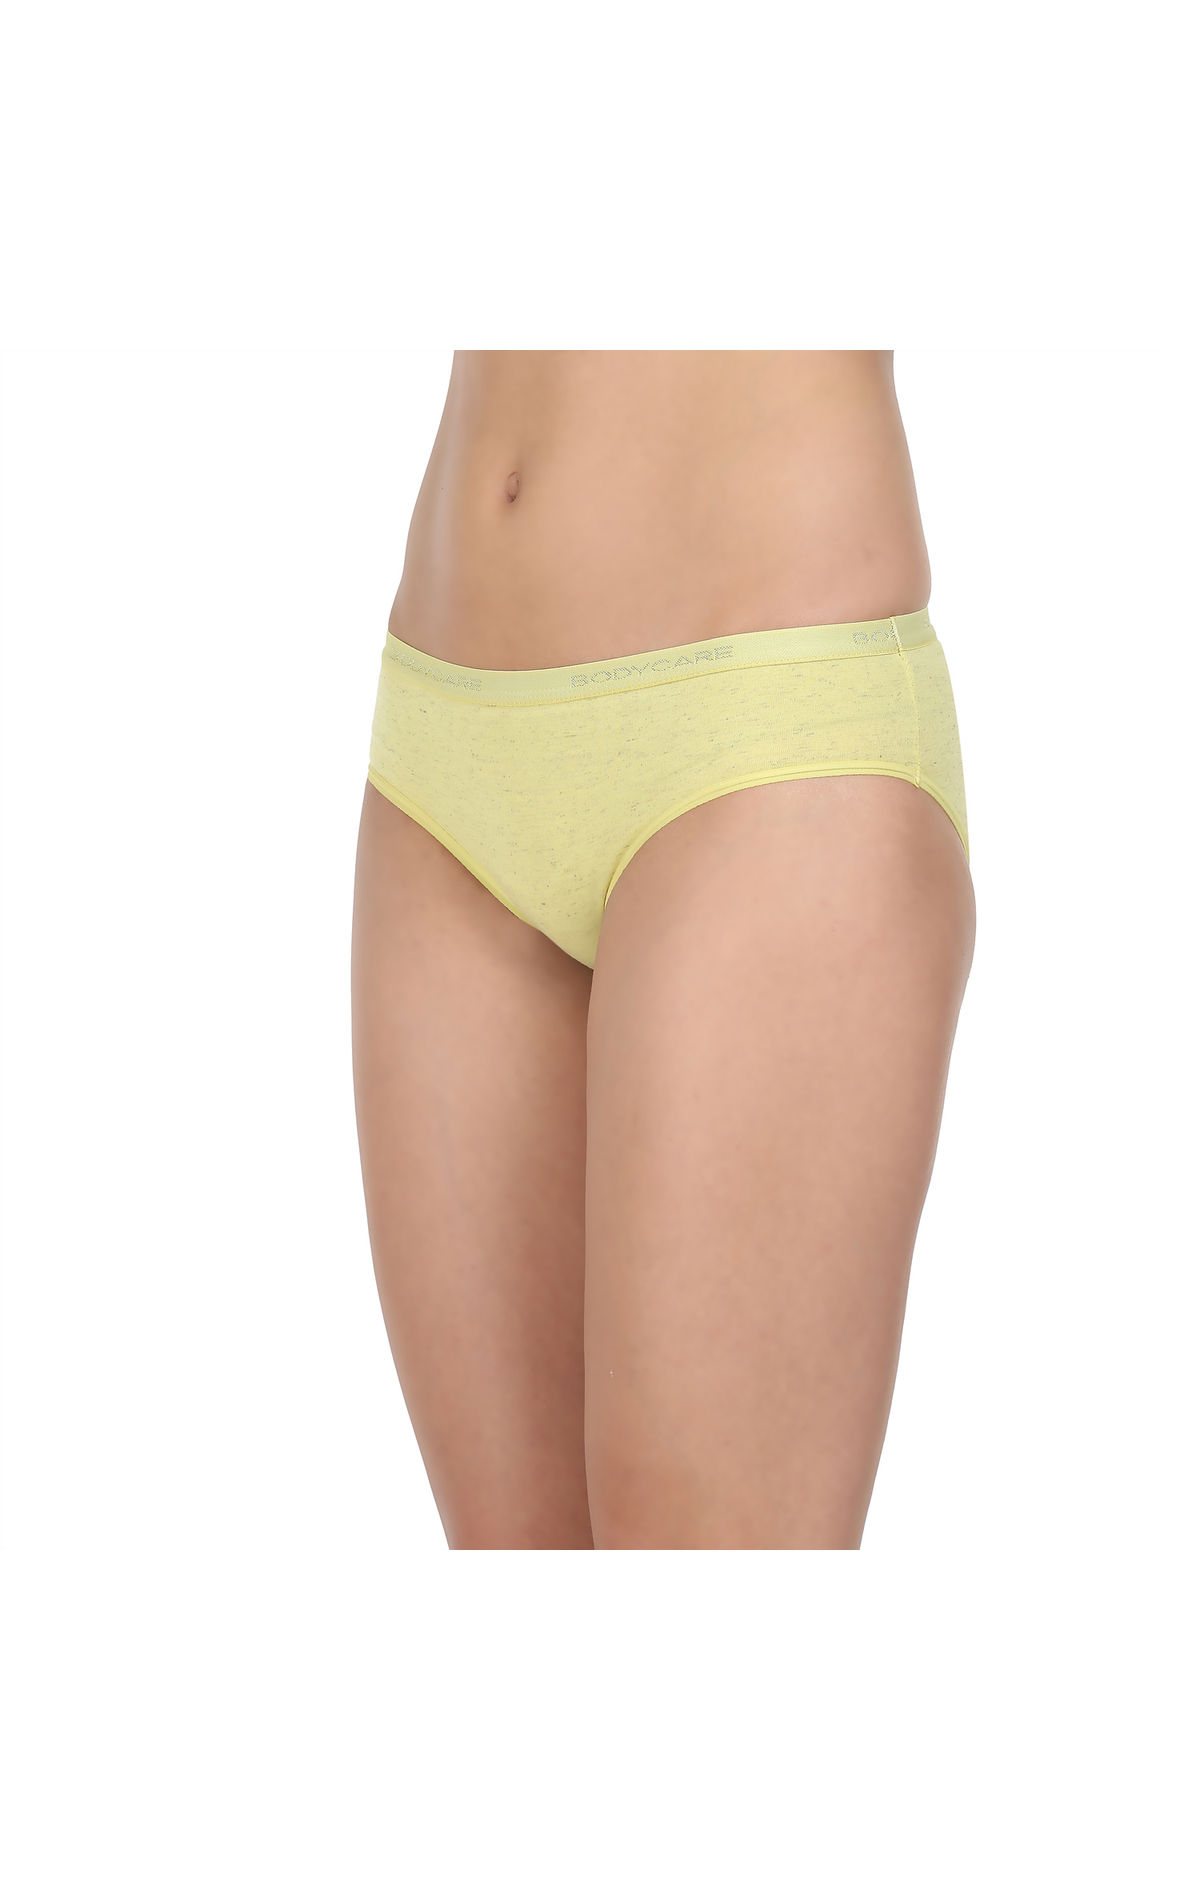 Pack Of 3 Bikini Style Cotton Briefs In Assorted Colors ...